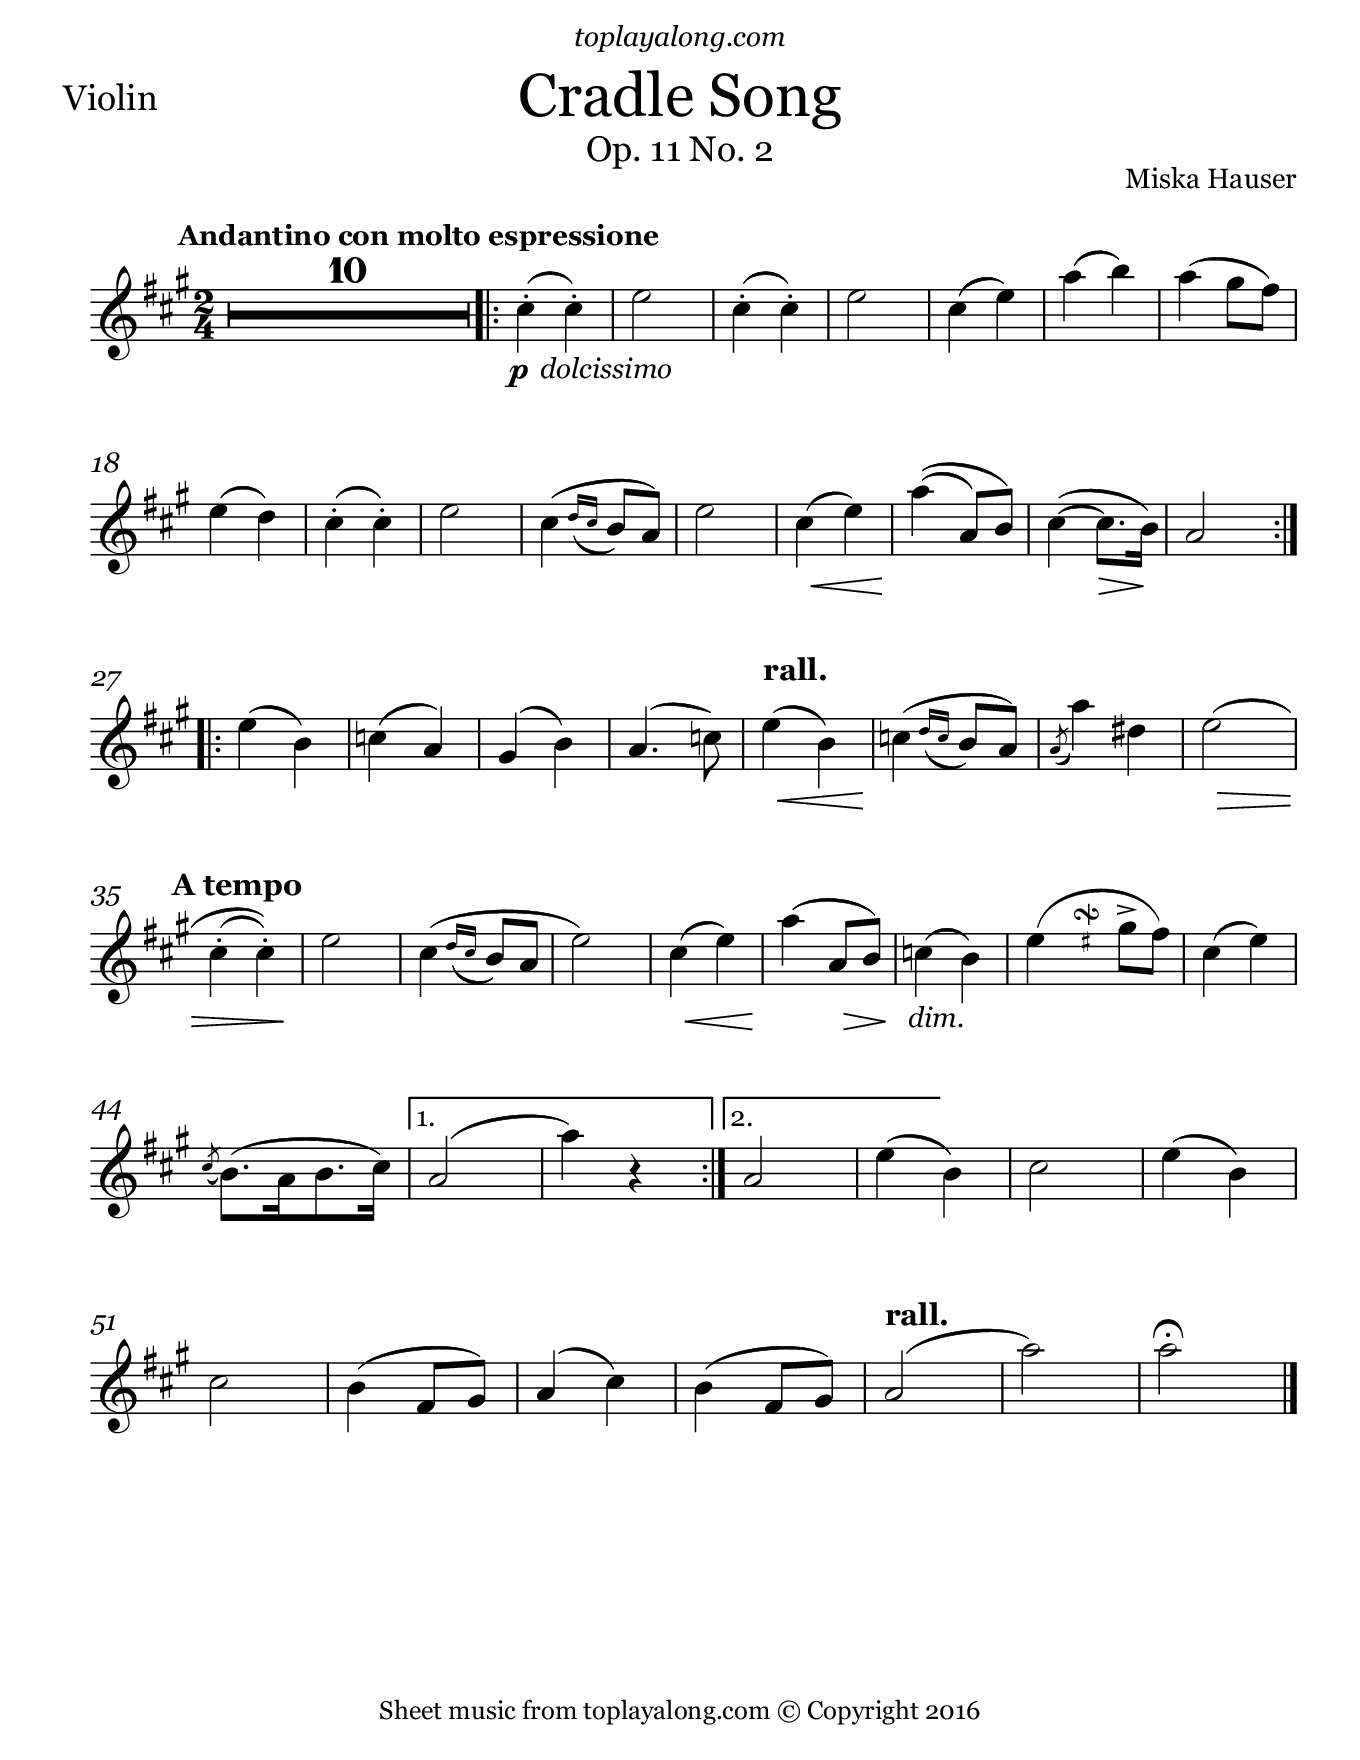 Cradle Song by Hauser. Sheet music for Violin, page 1.